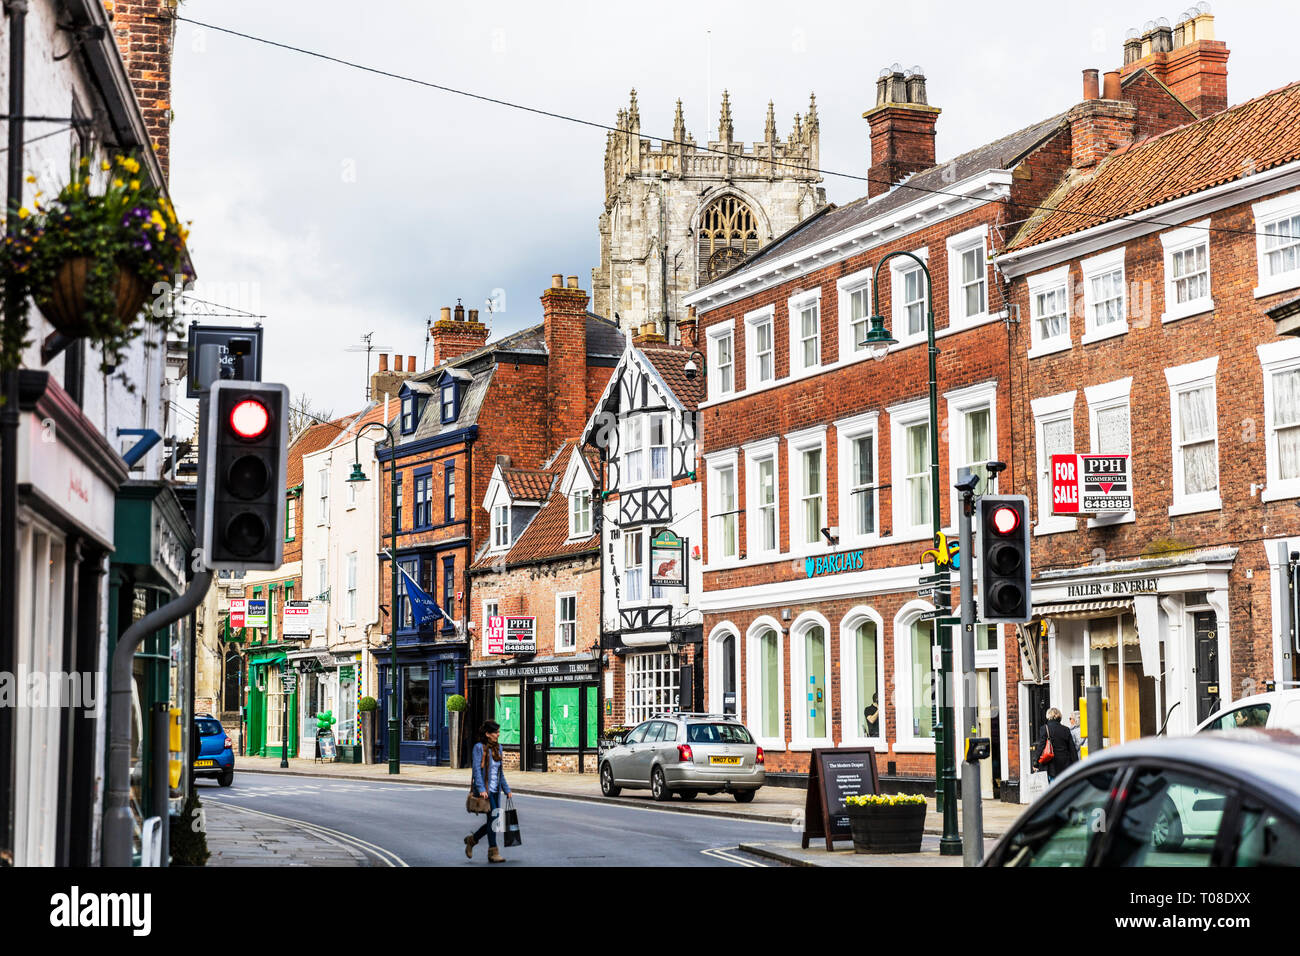 Beverley town centre, center, shops, shoppers, stores outside main street shopping area Beverley Yorkshire UK England - Stock Image